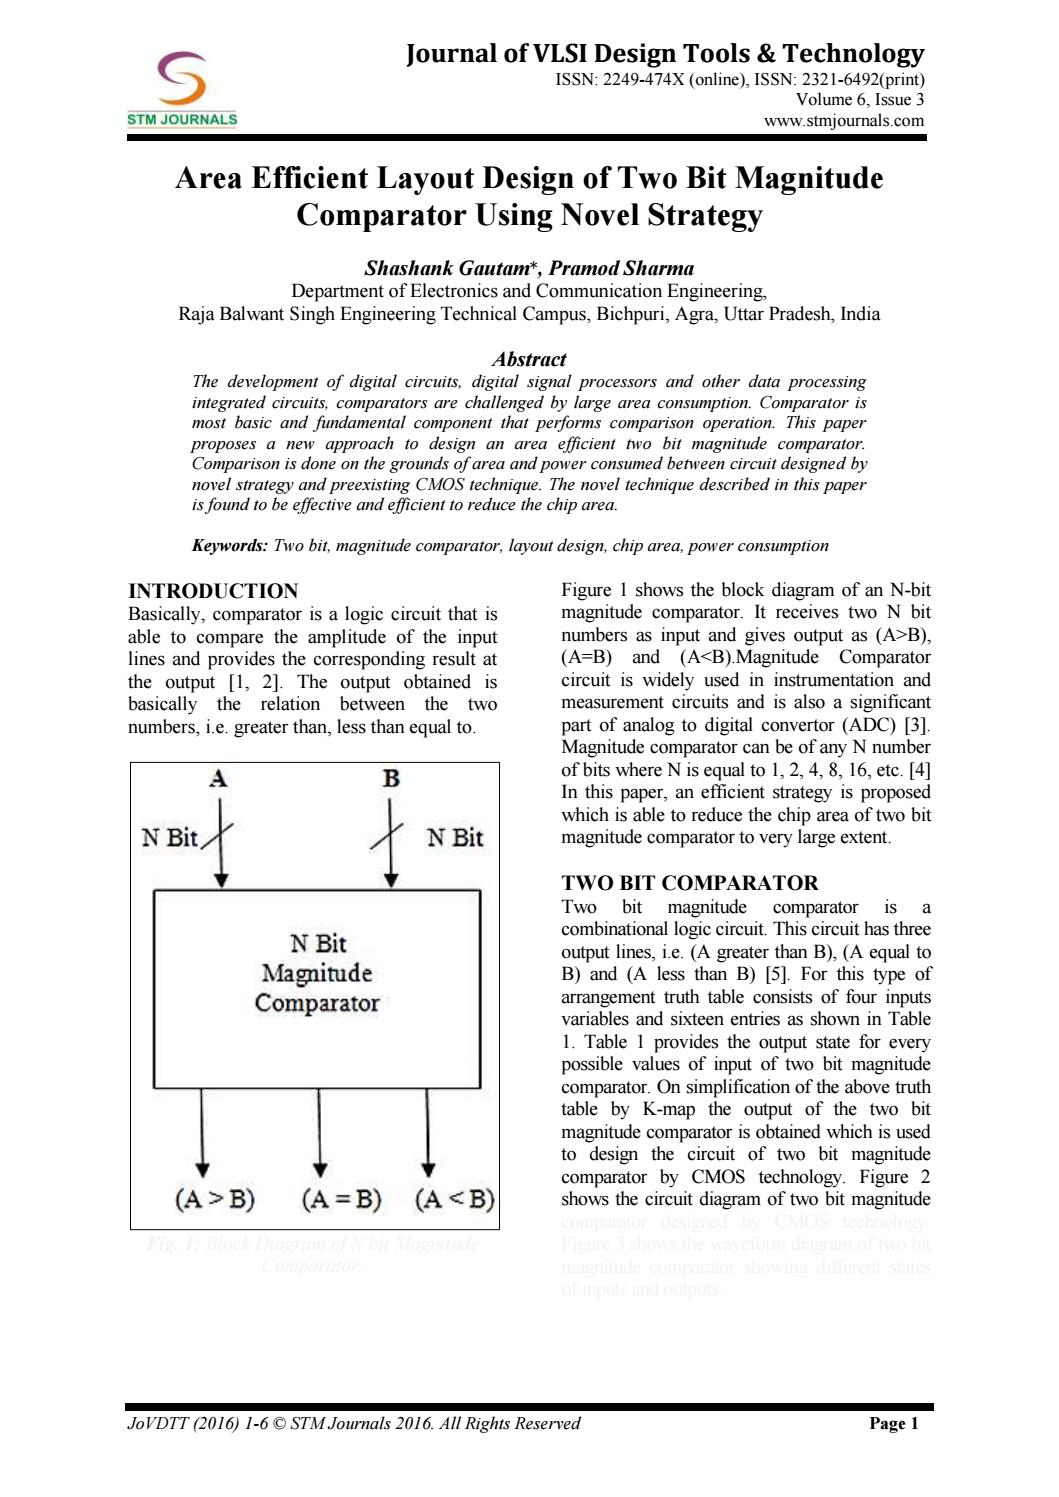 Journal Of Vlsi Design Tools Technology Vol 6 Issue 3 By Stm Circuit Diagram 4 Bit Comparator Journals Issuu